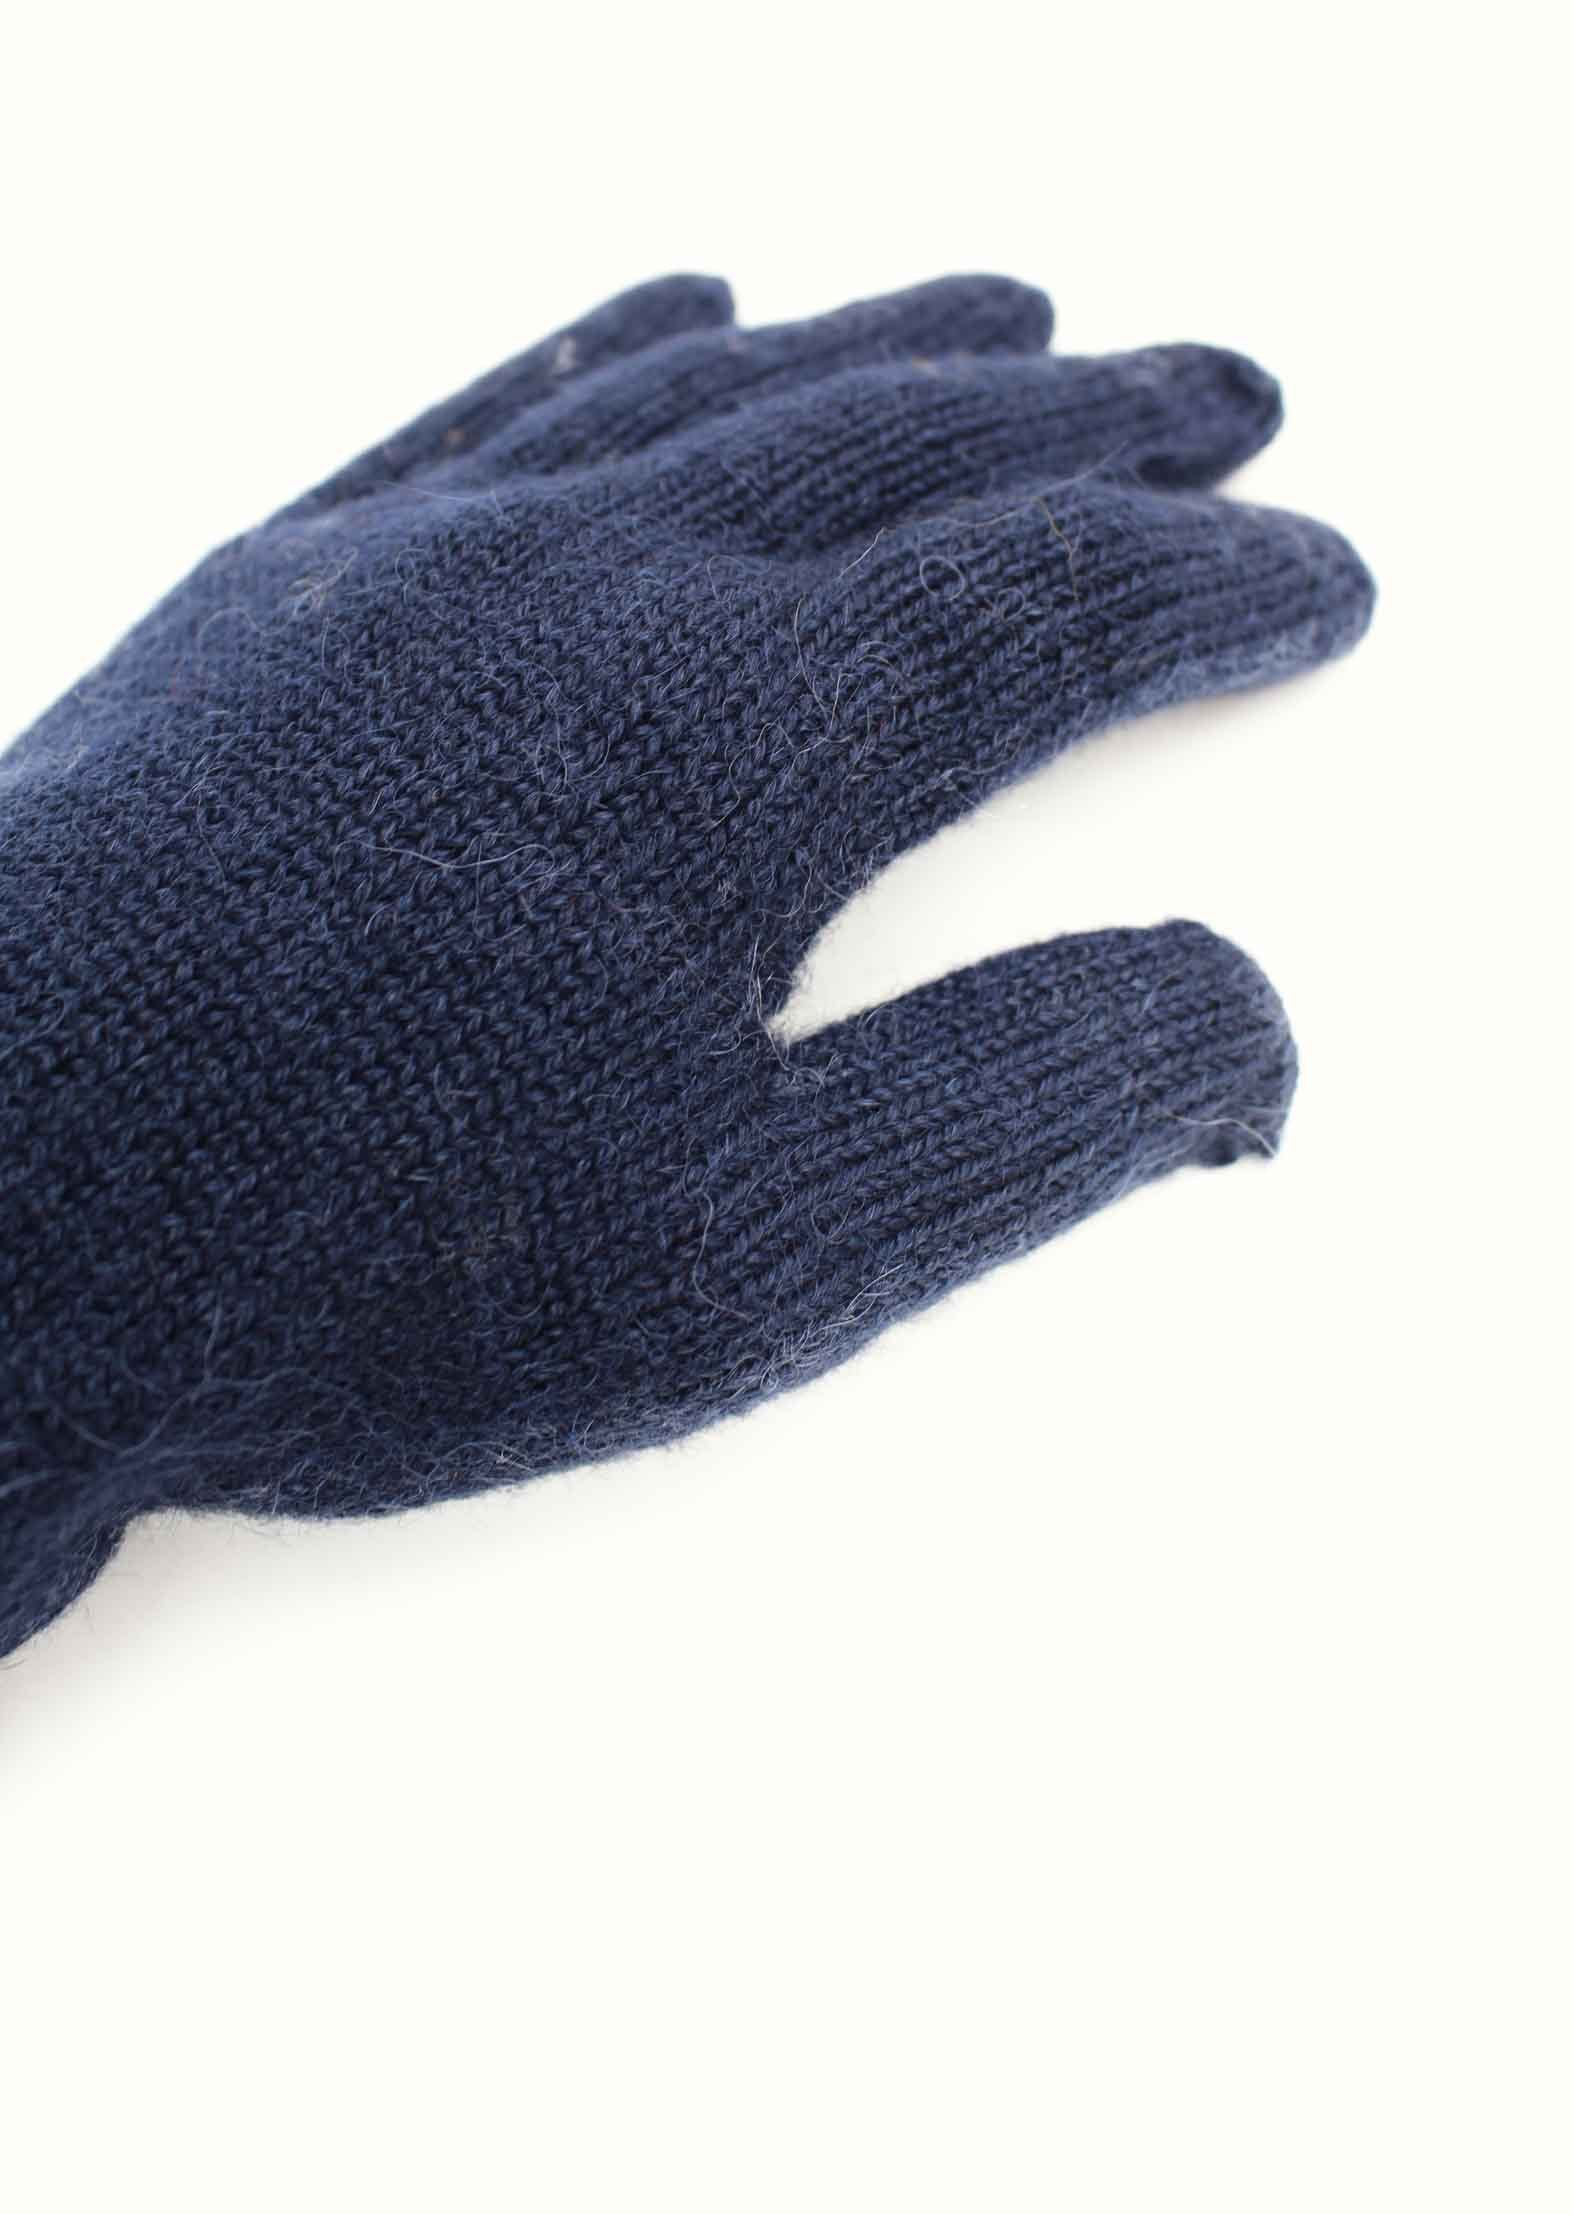 Knitted gloves - Peruvian superfine alpaca blend - Ink blue - De Bonne Facture